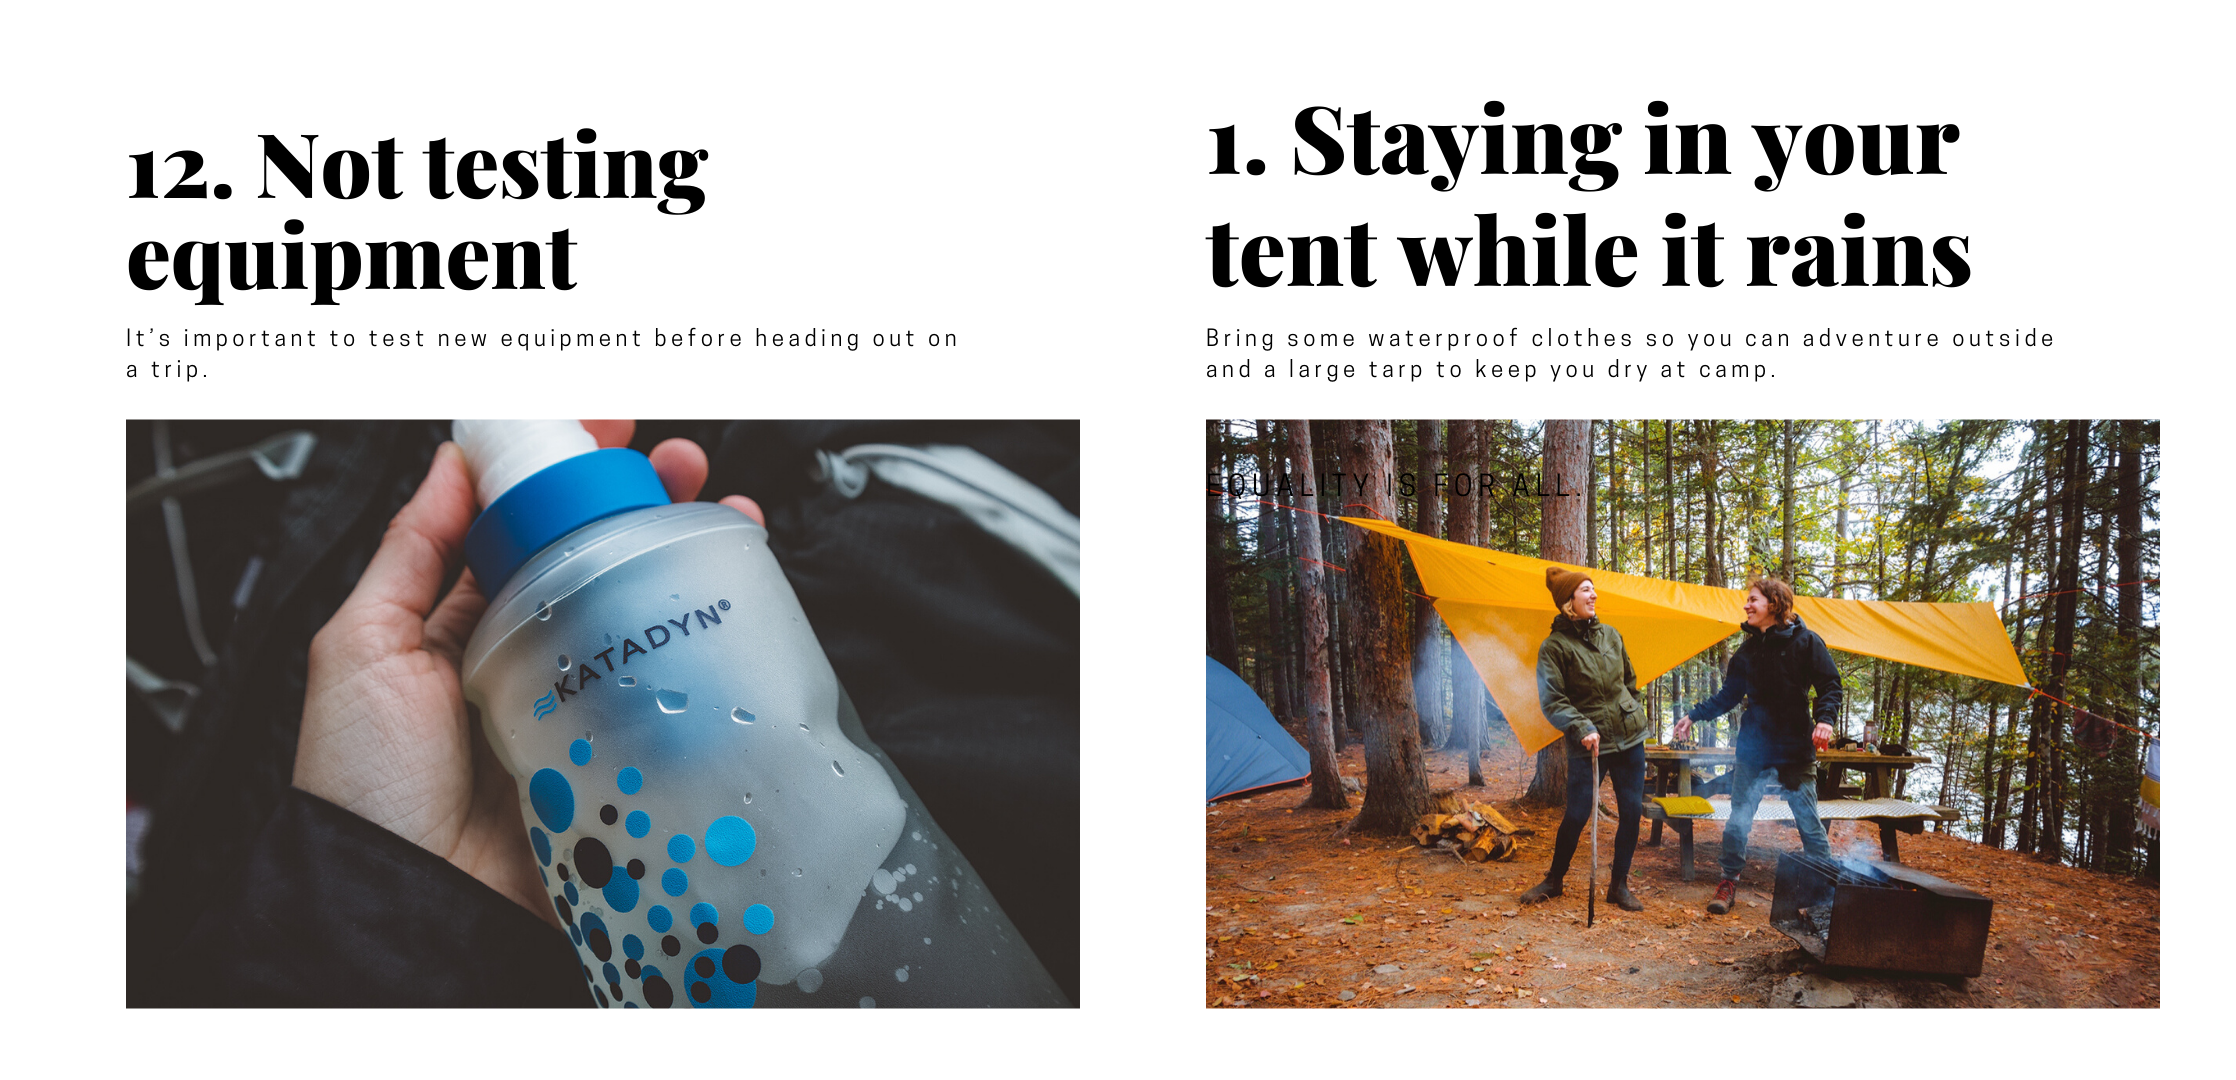 """Two photos of common camping mistakes. First photo is of the Katadyn water filter. The caption reads """"not testing equipment."""" The second photo shows two women in front of a tarp shelter. The caption reads """"staying in your tent while it rains."""""""